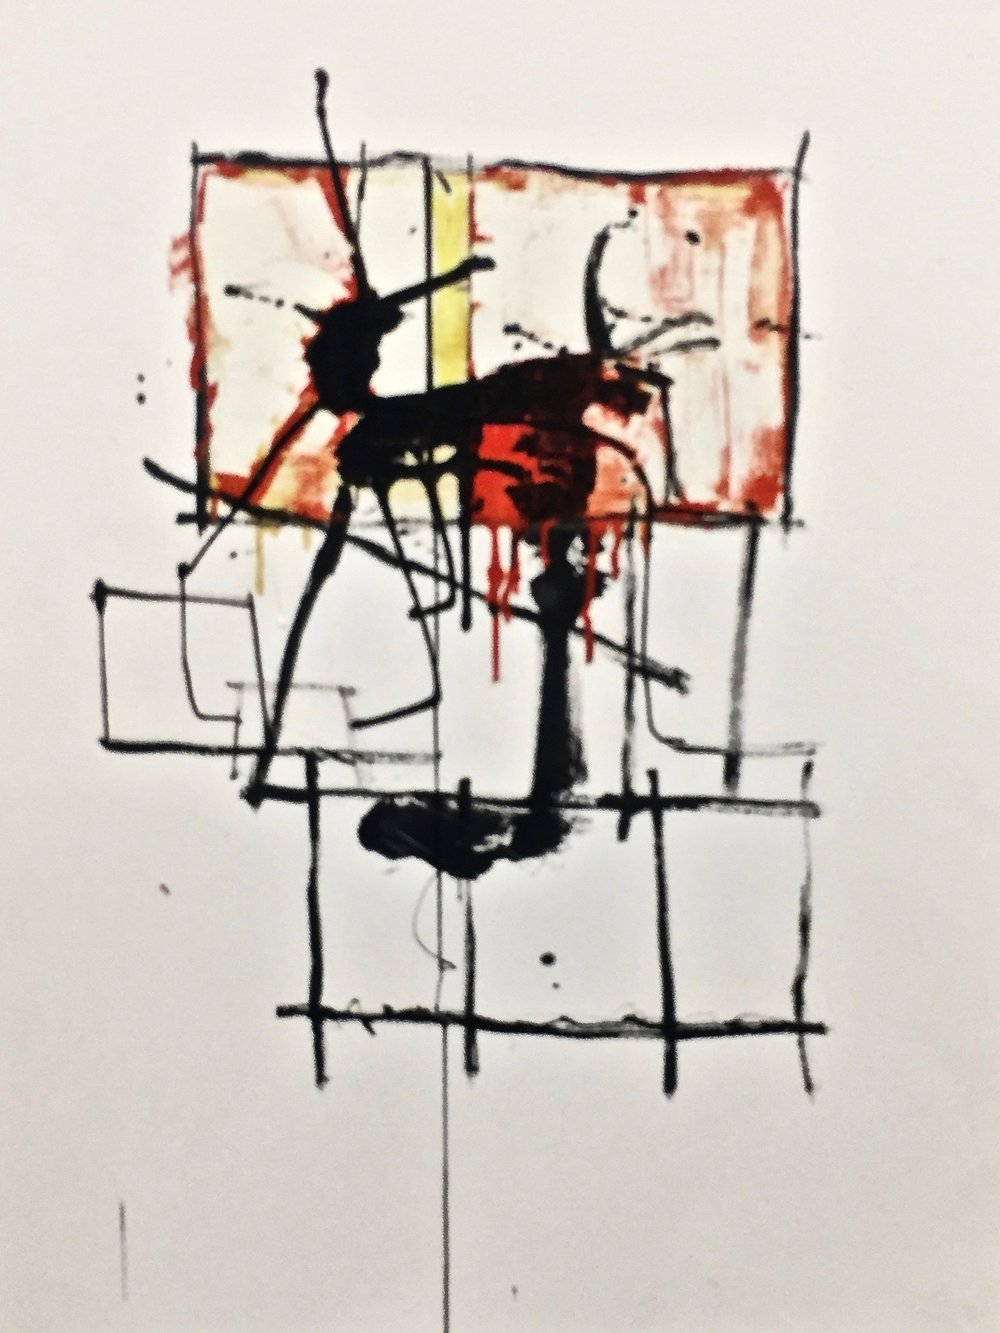 KW-098_Nonfiction 22_Encaustic on paper_2016_22x30.jpg